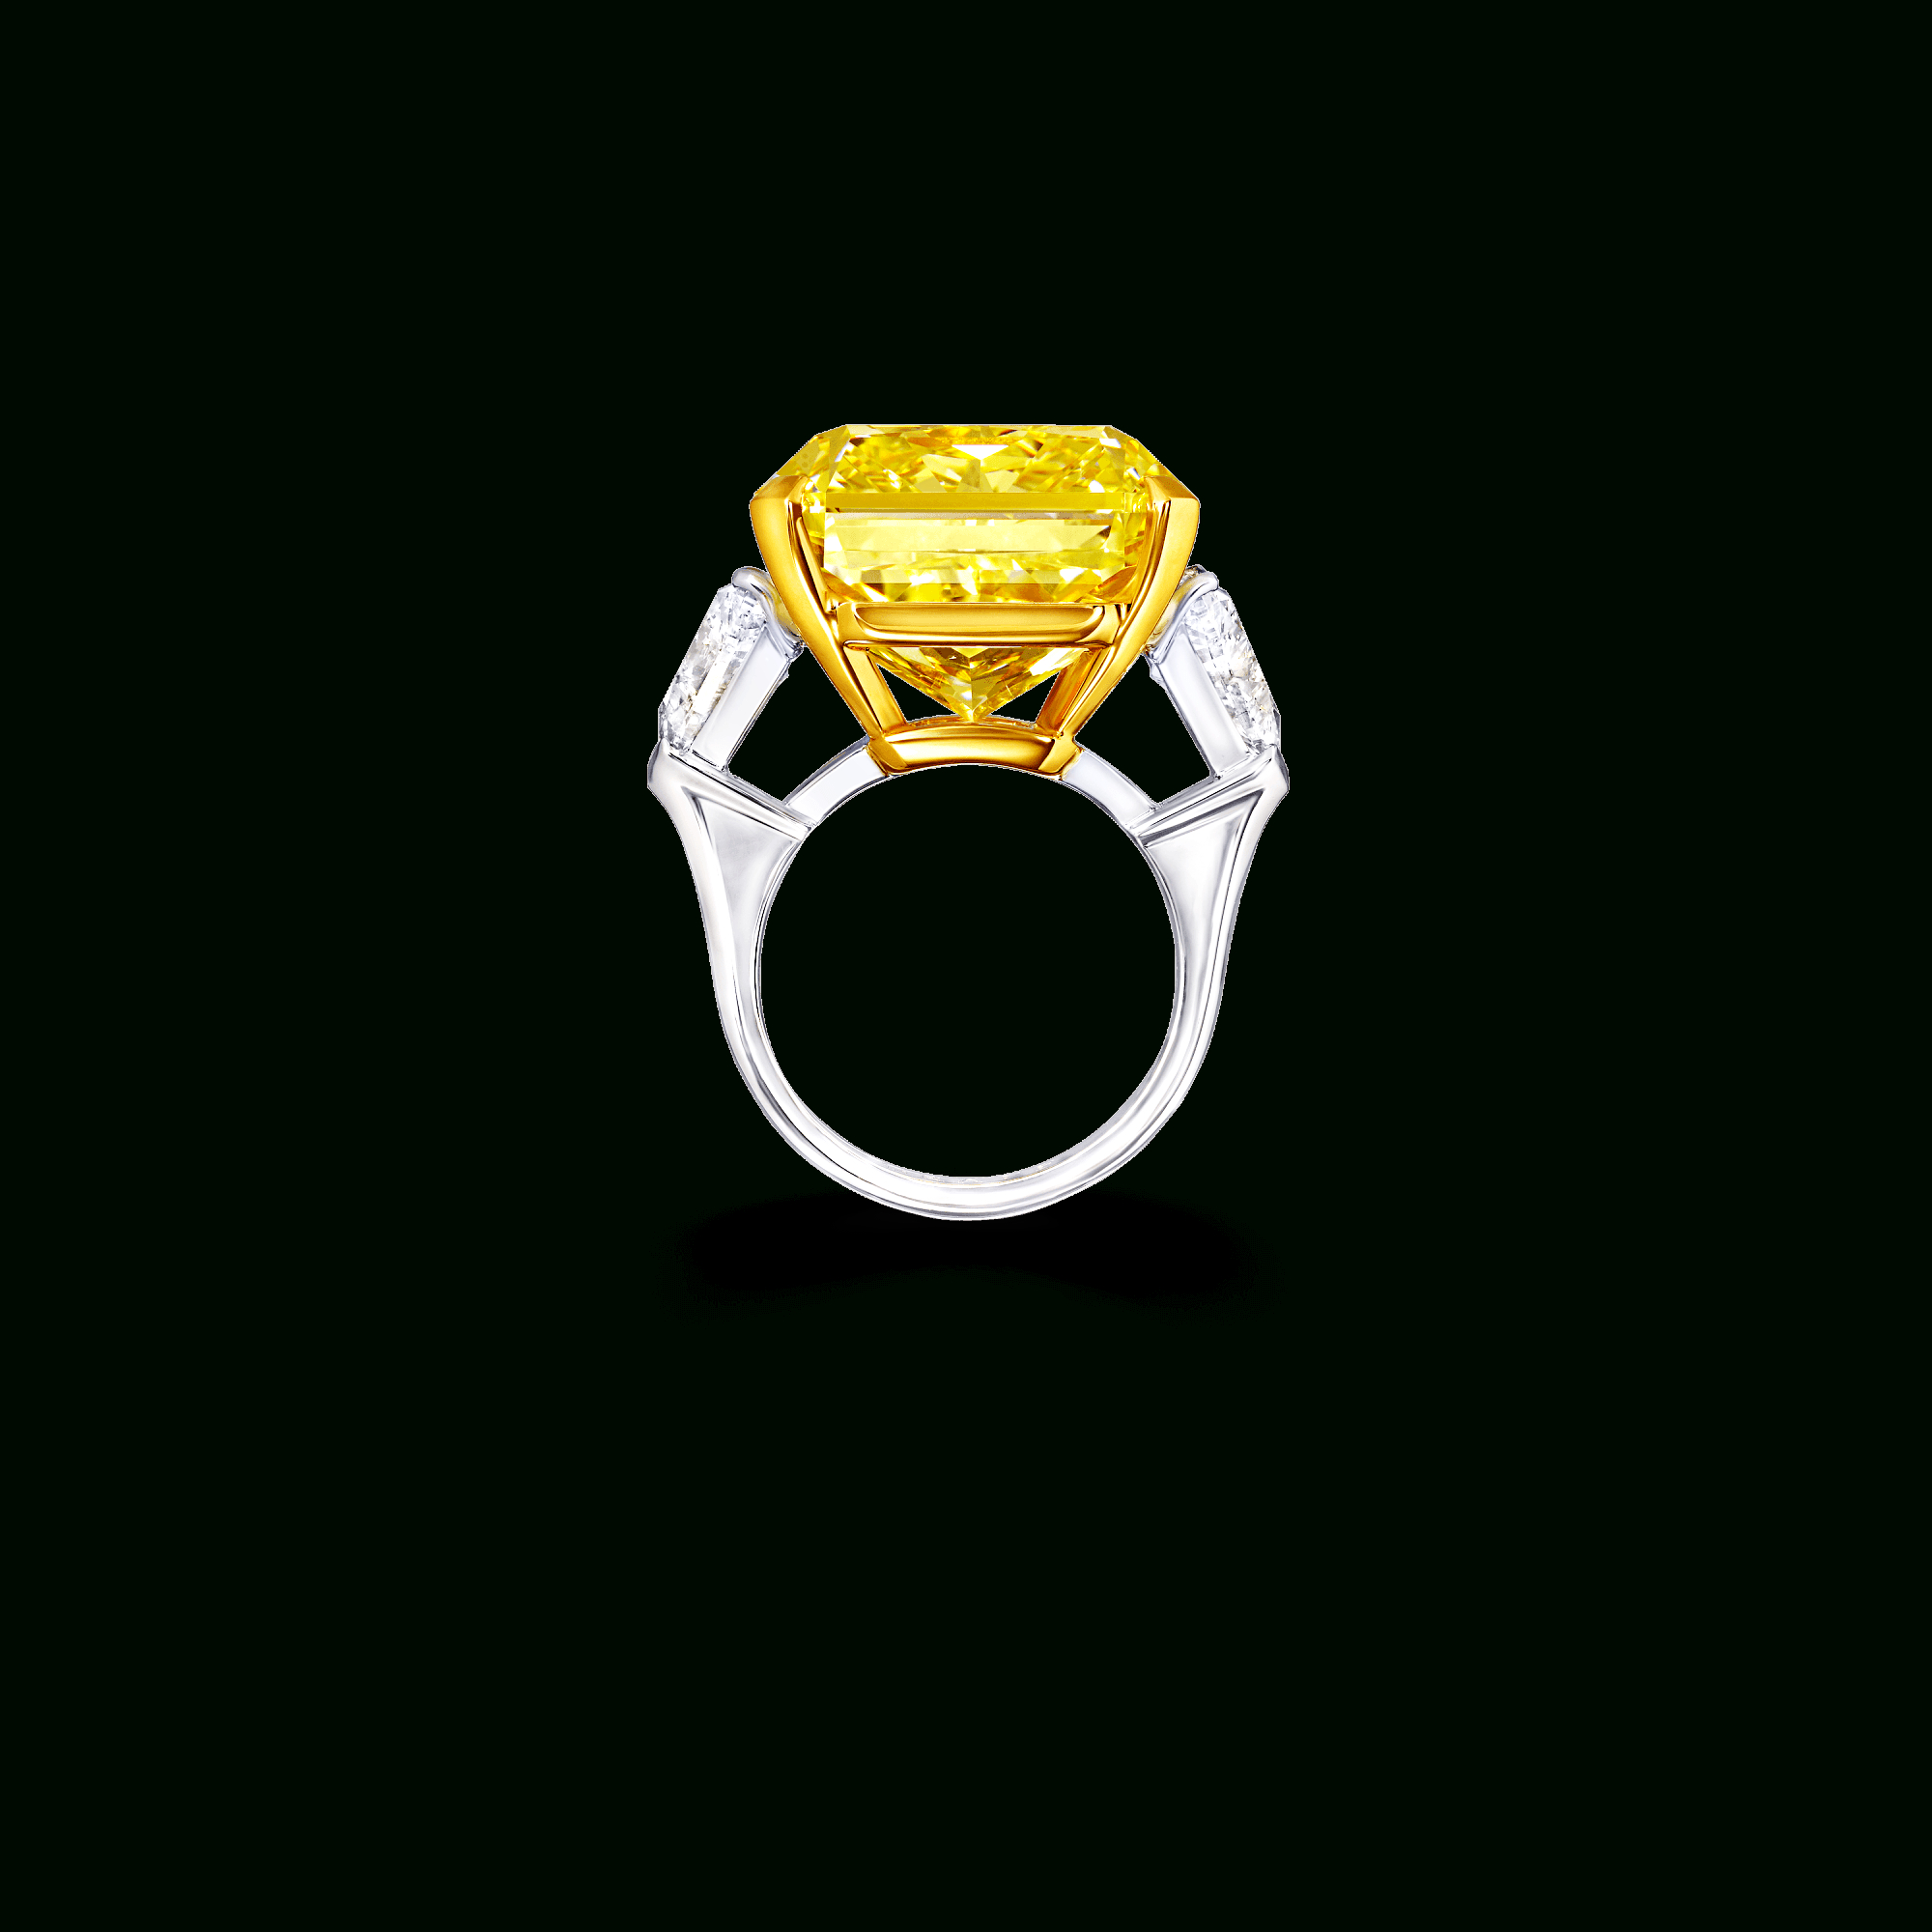 Radiant Cut Yellow And White Diamond Ring | Graff Pertaining To Radiant Yellow Diamond Rings (View 18 of 25)